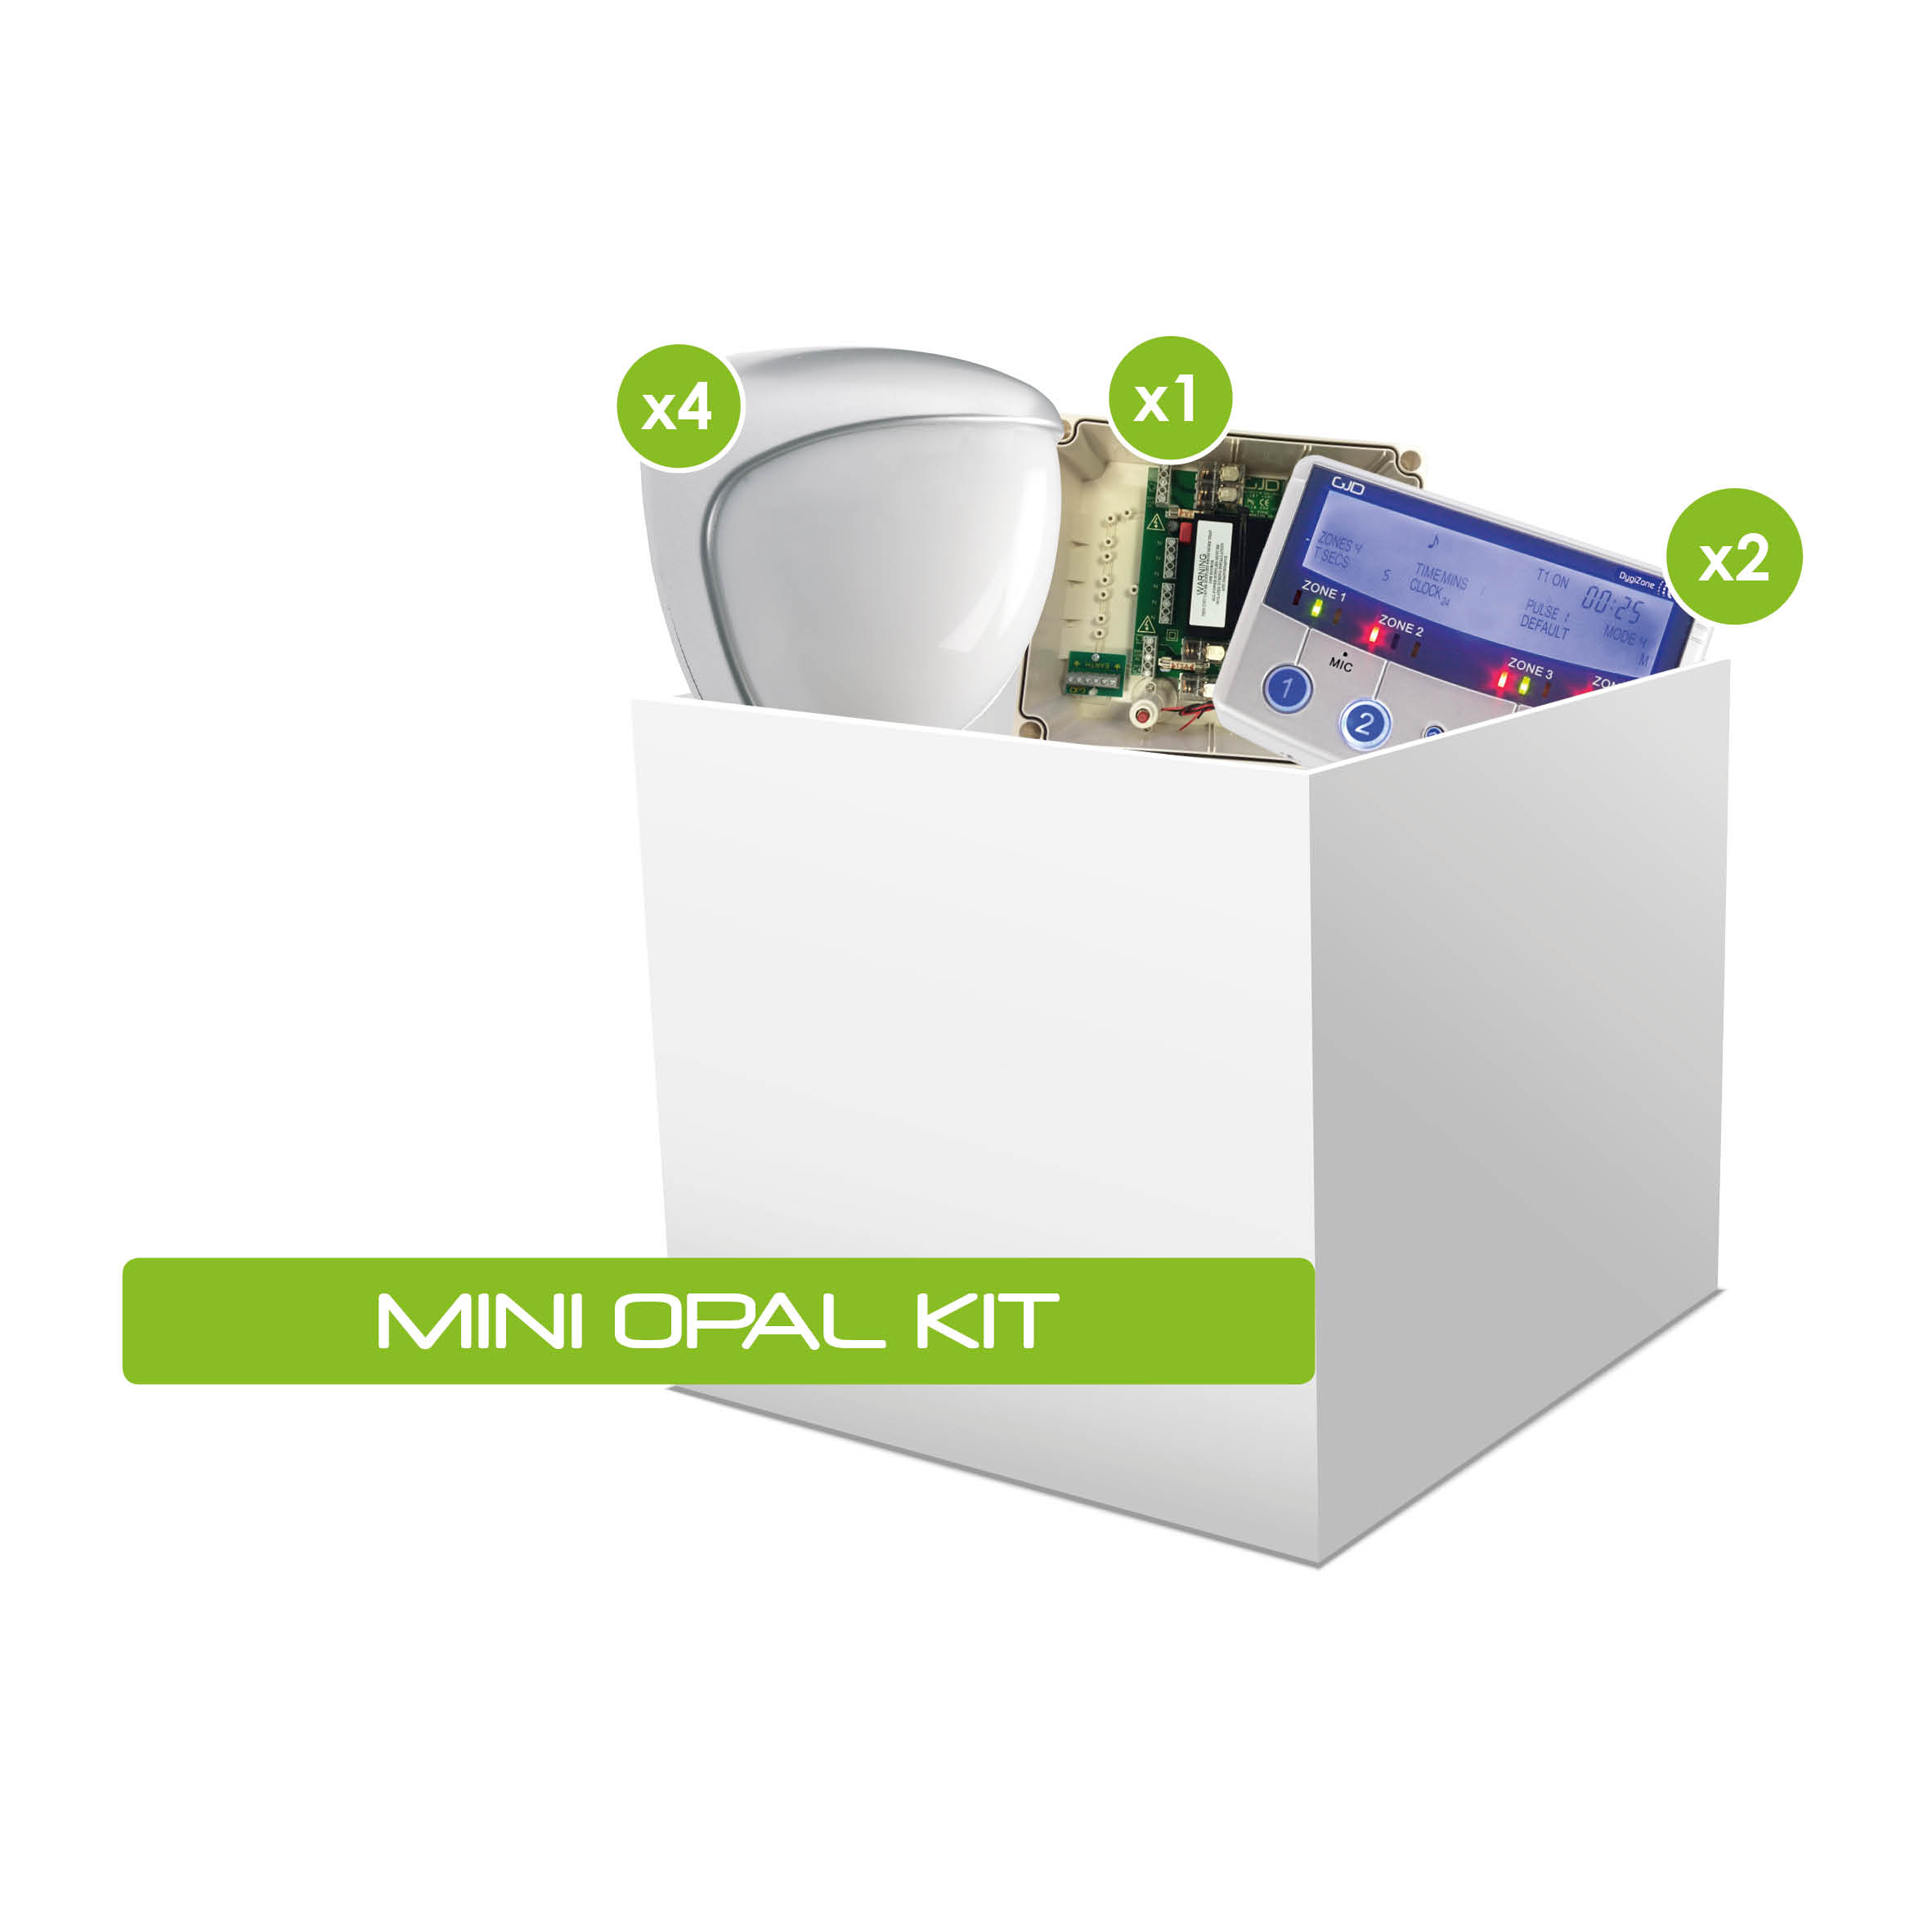 Mini Opal Lighting KIT